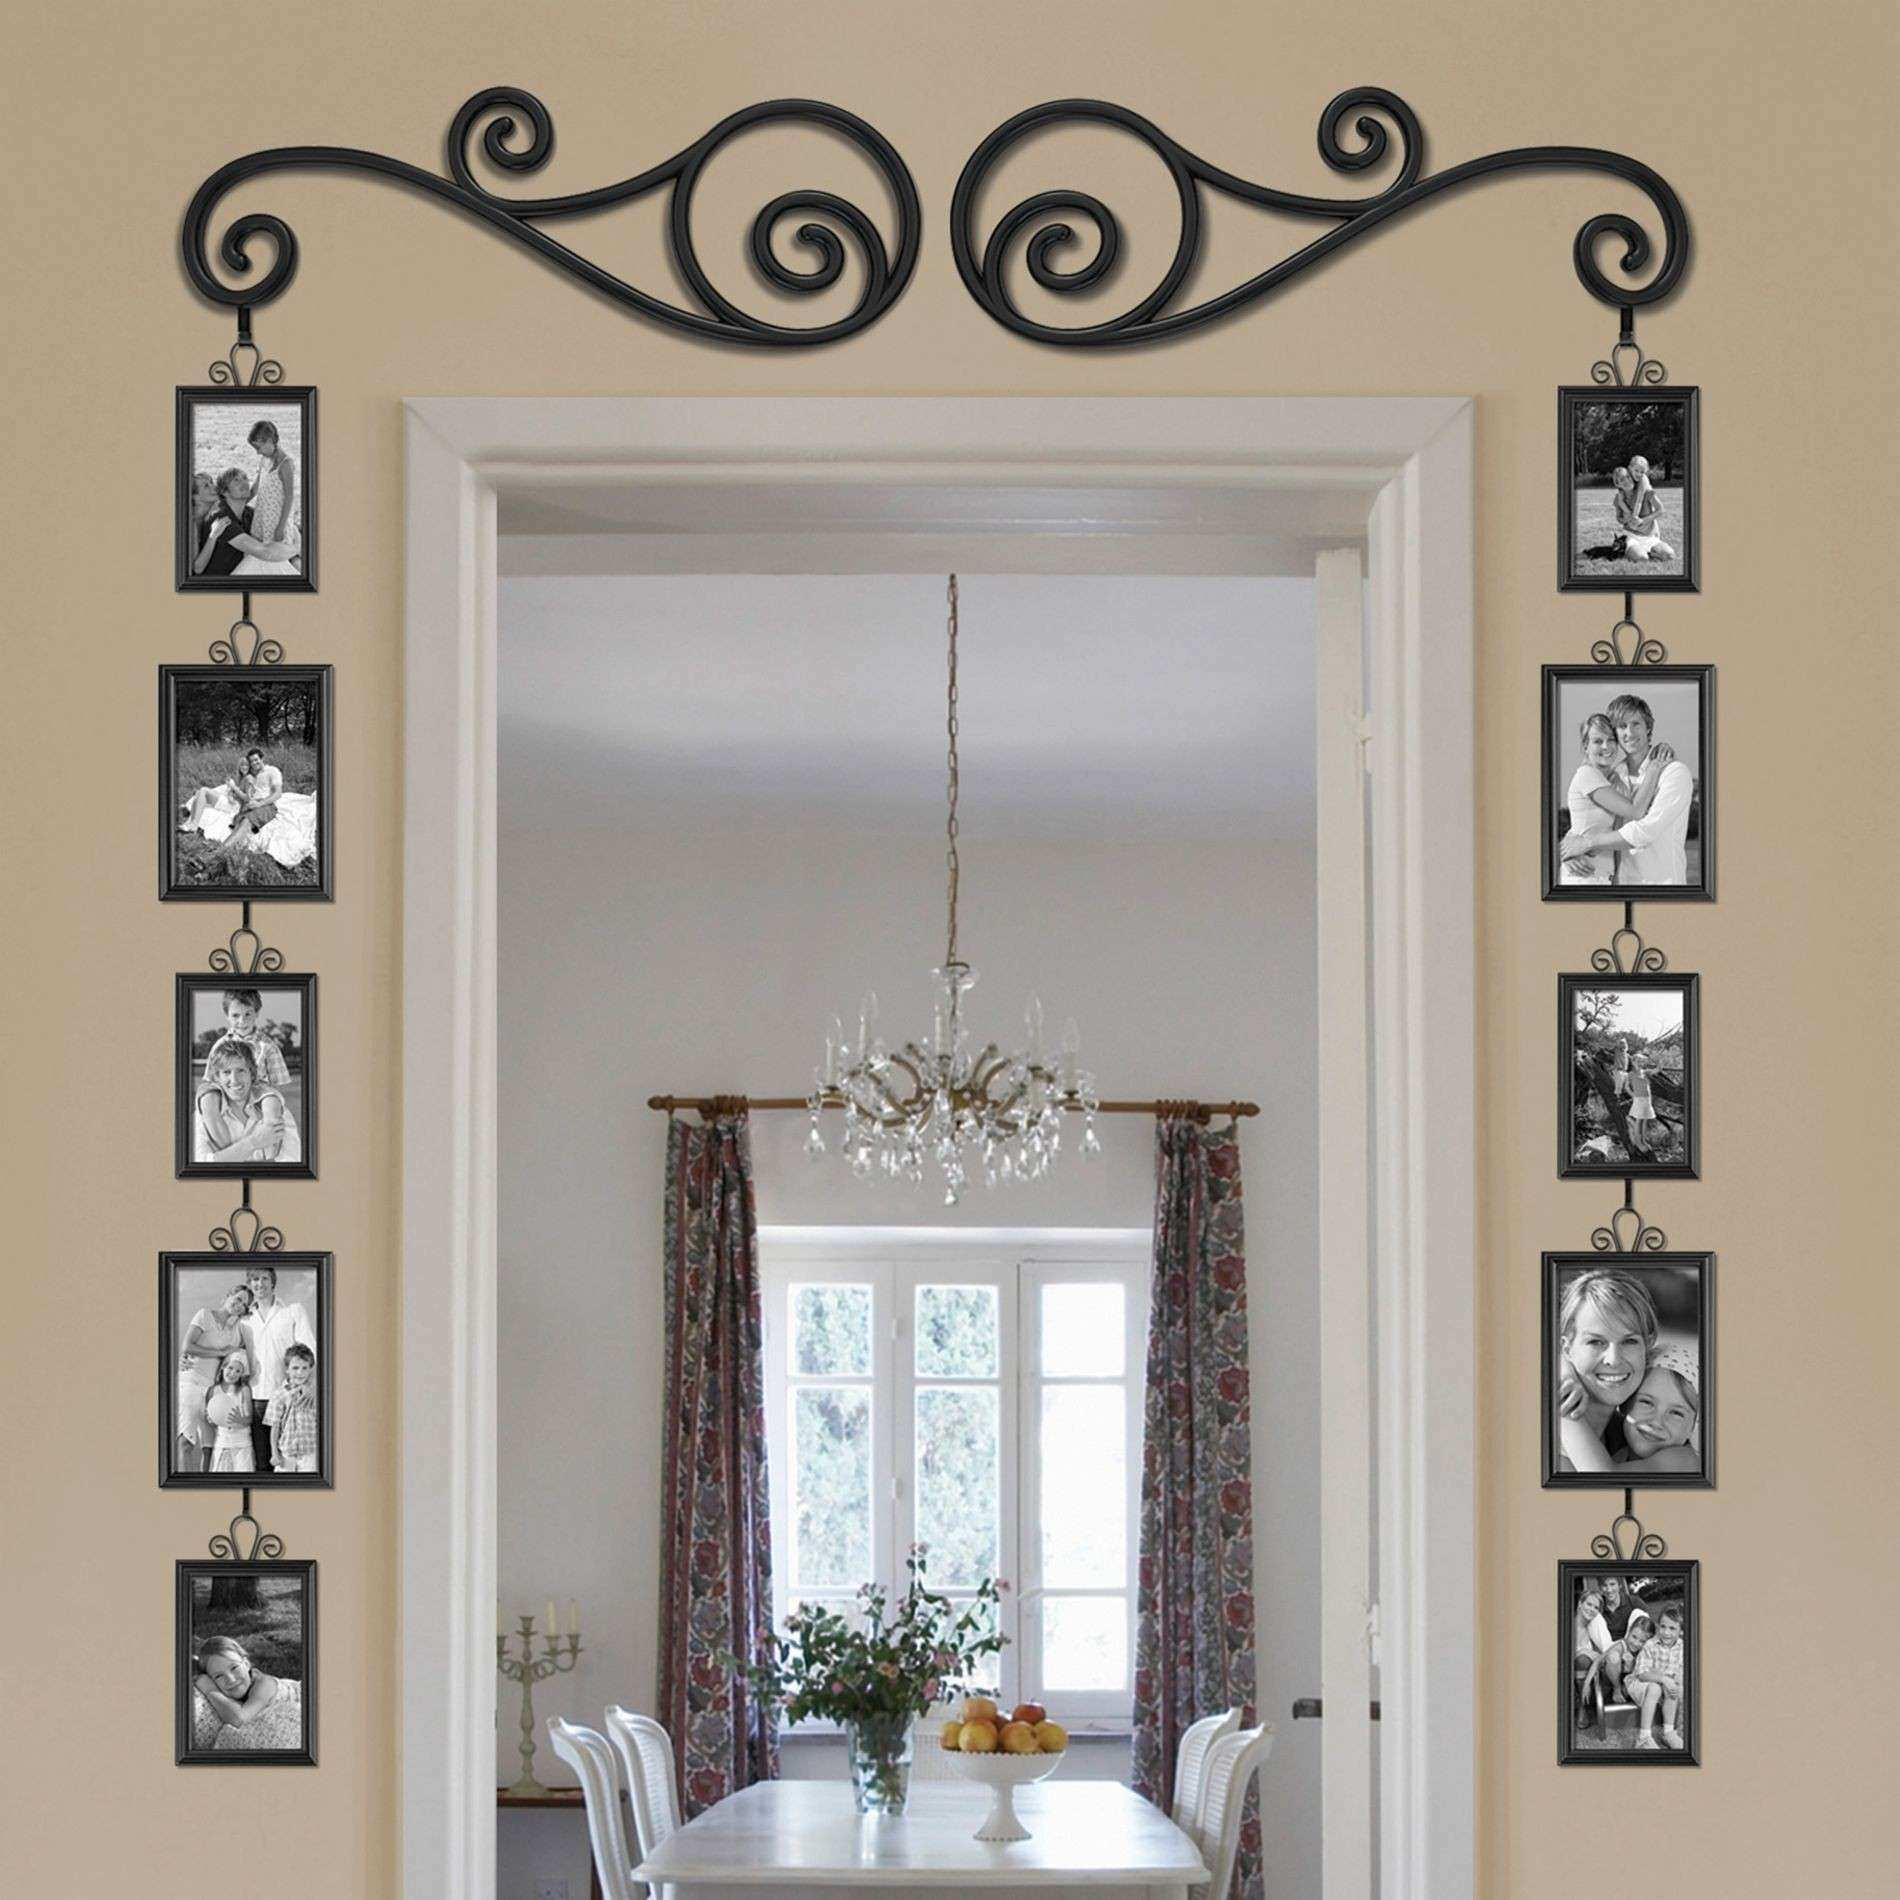 Enchanting Picture Frame Picture Ideas Frieze - Picture Frame Ideas ...